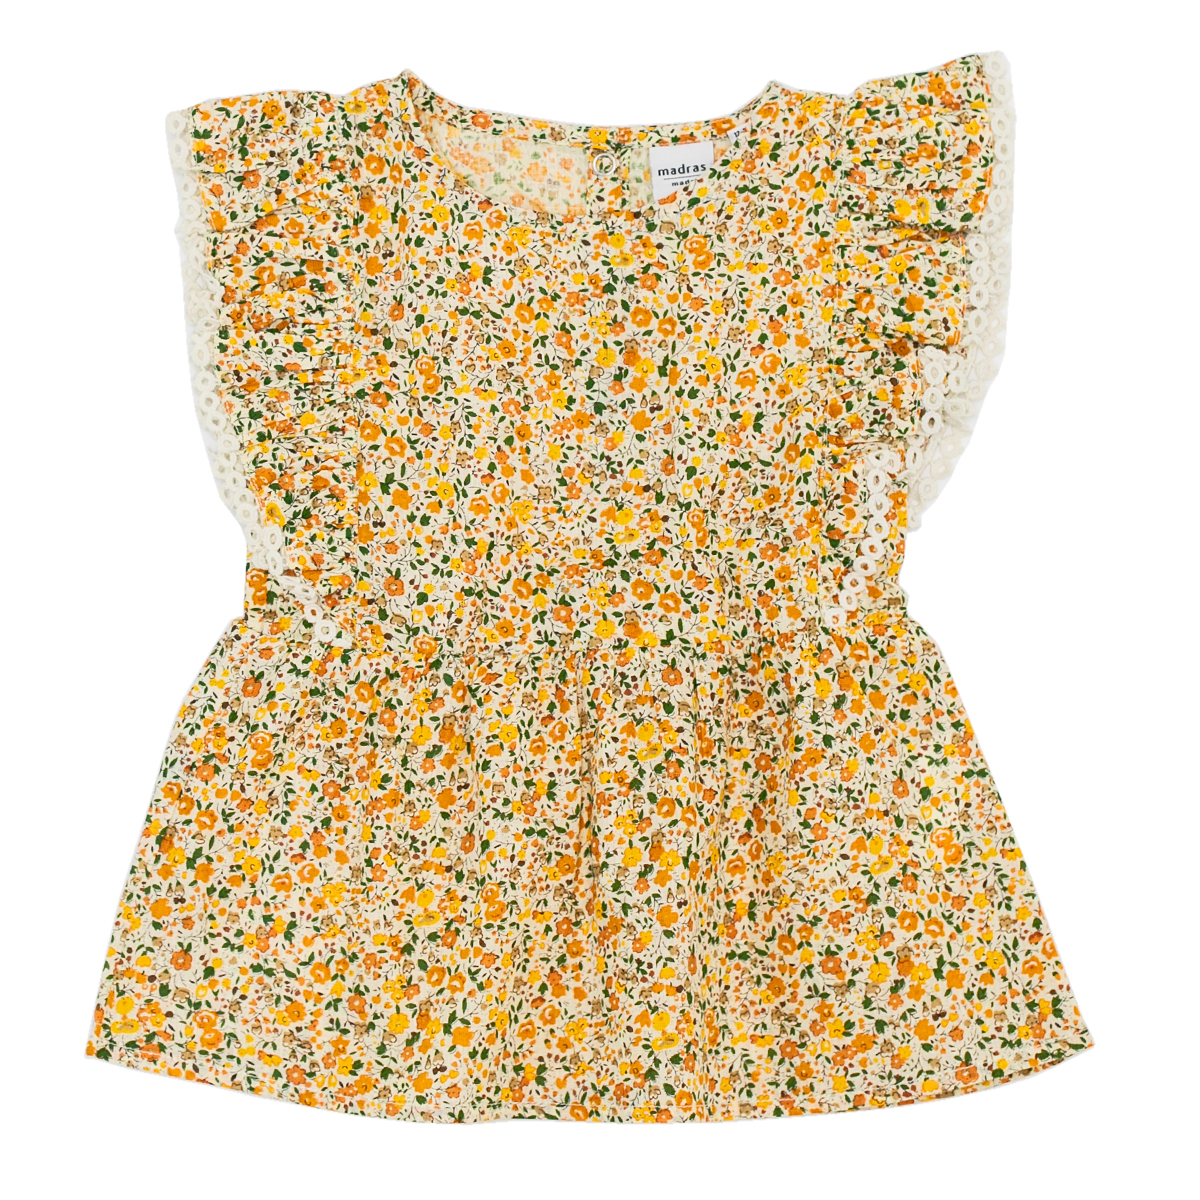 Madras Made Top in Yellow Floral